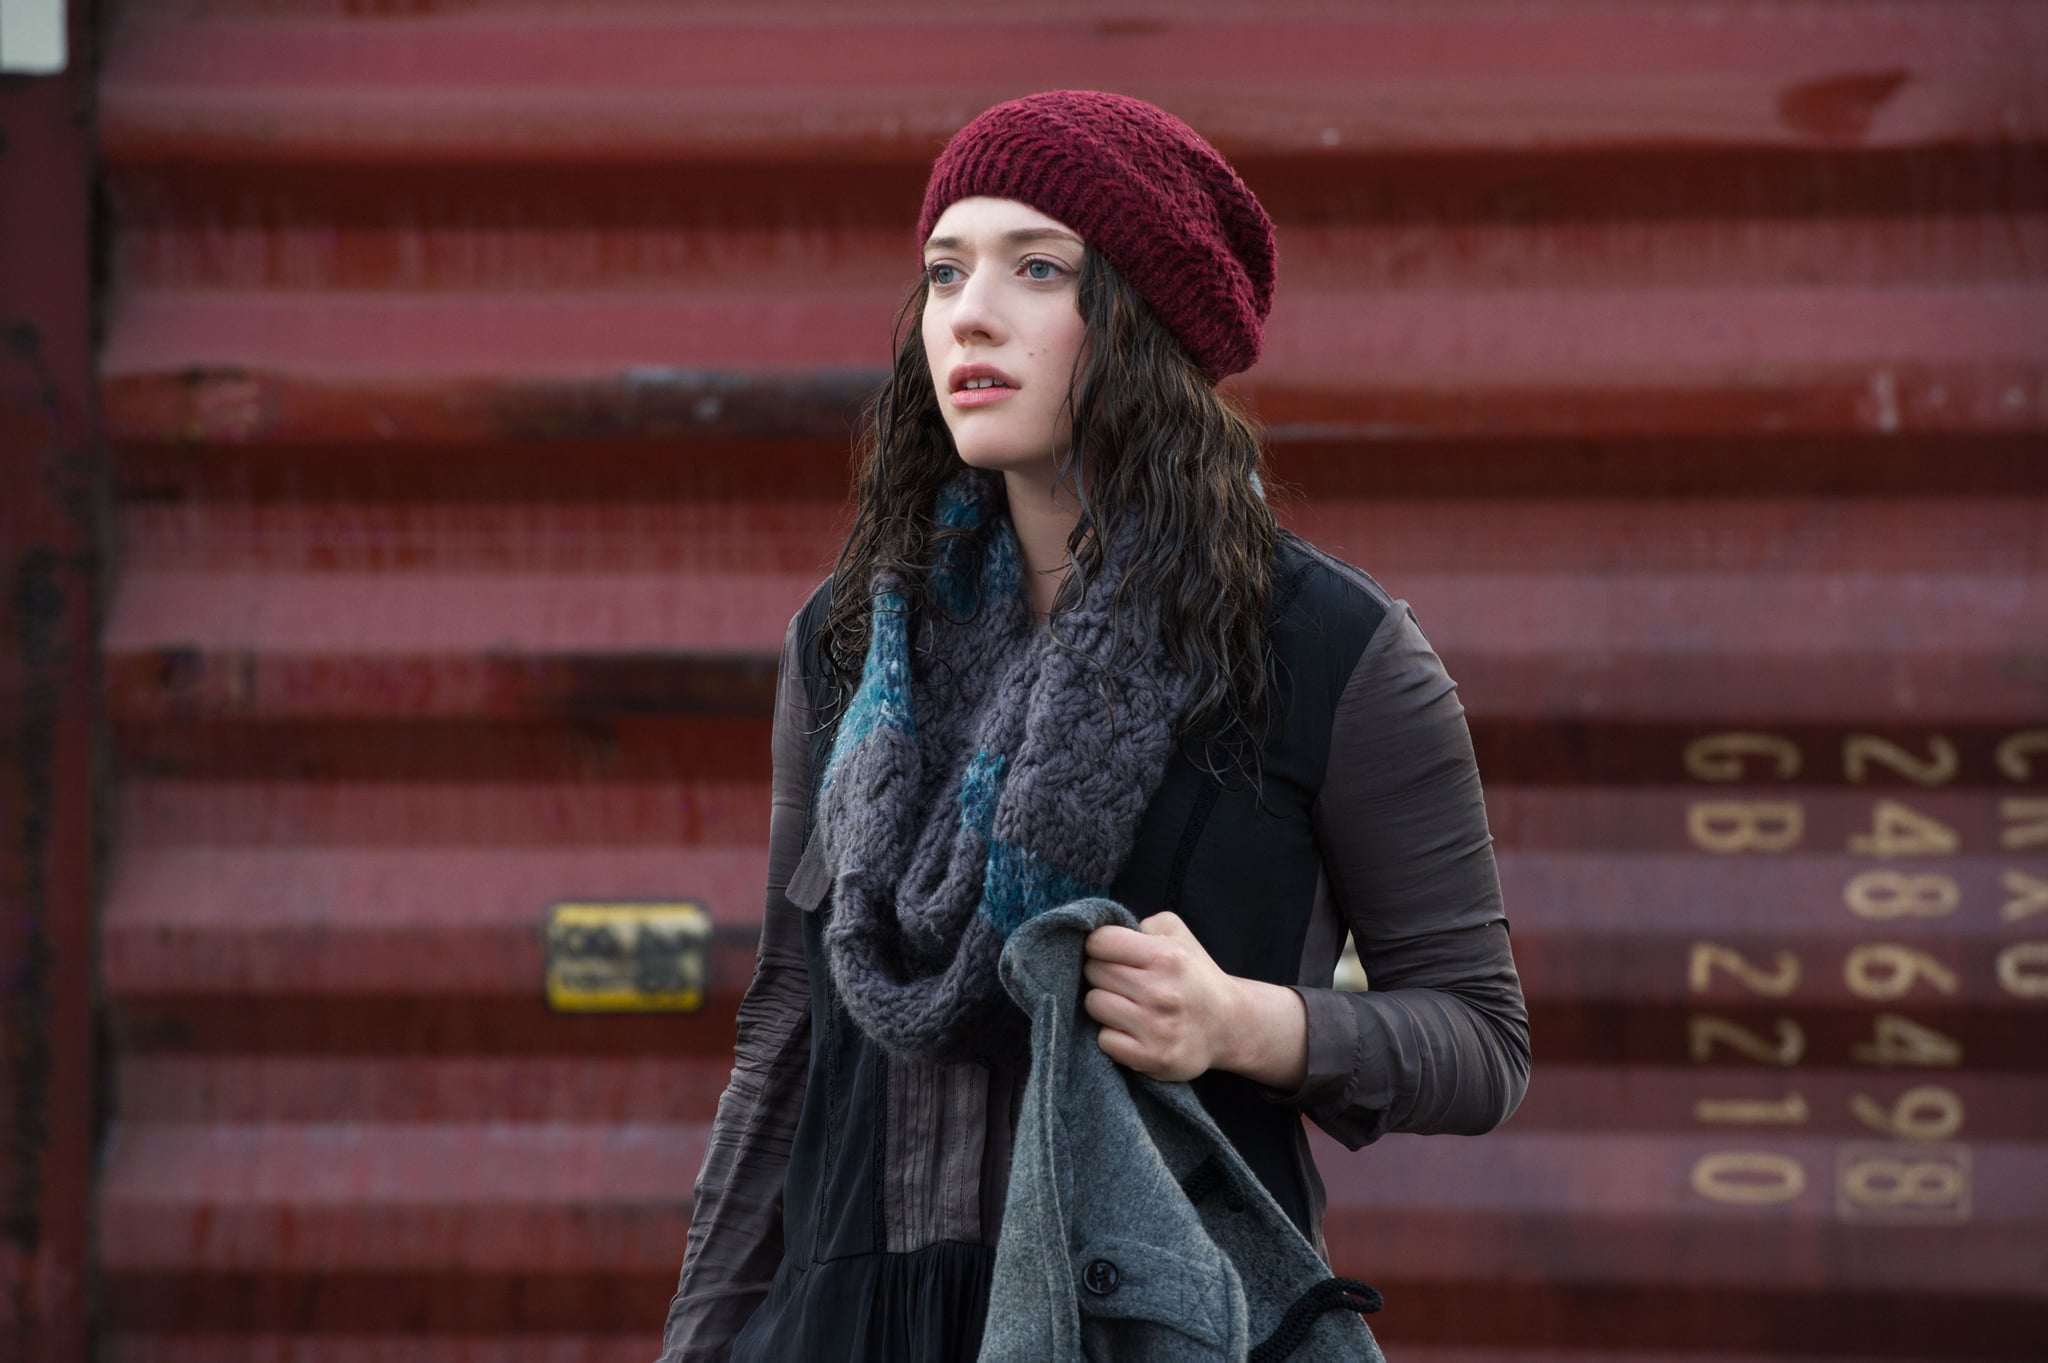 THOR: THE DARK WORLD, Kat Dennings, 2013. ph: Jay Maidment/Walt Disney Studios/courtesy Everett Collection